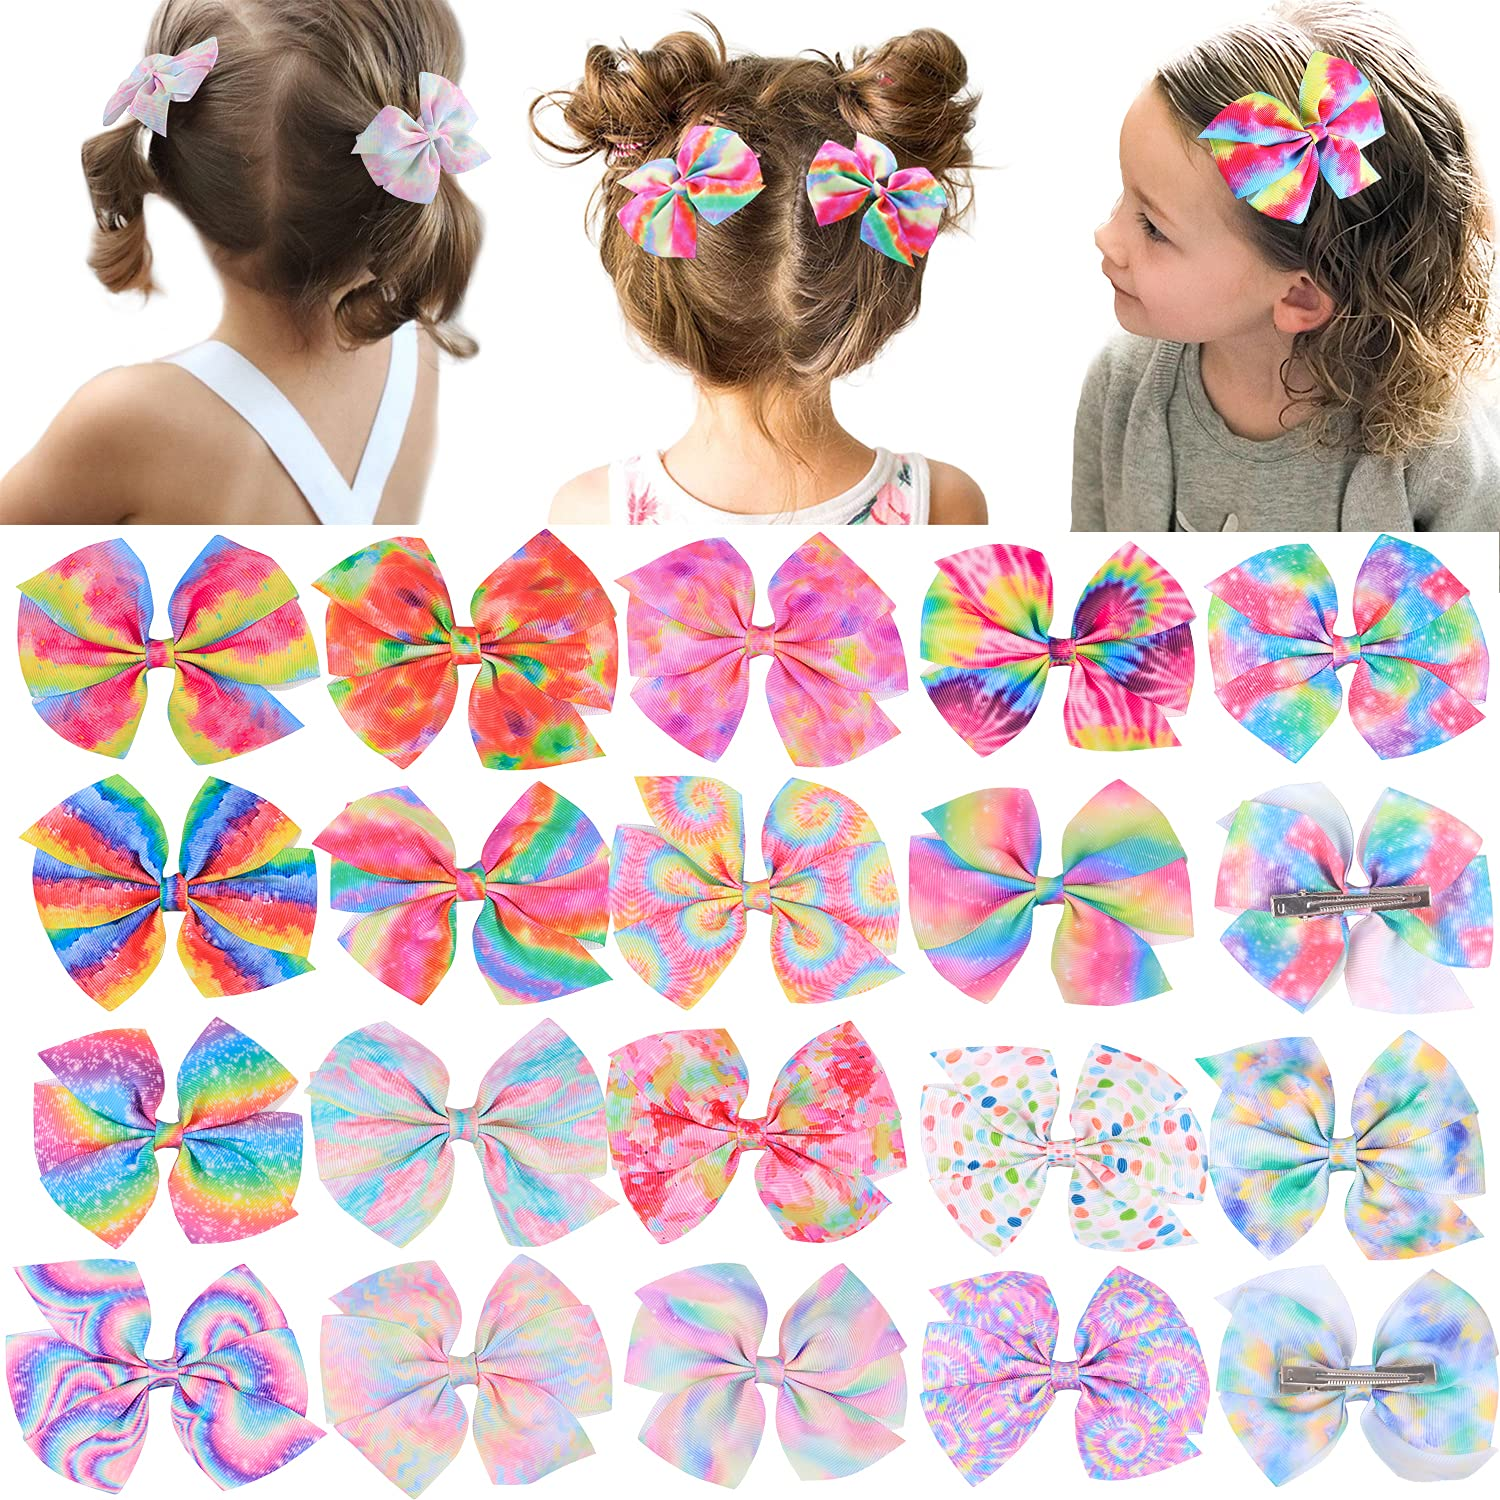 18 Pcs Pigtail Big Bows For Sales for sale Girls Toddler Hair Bow Product Tie Dye